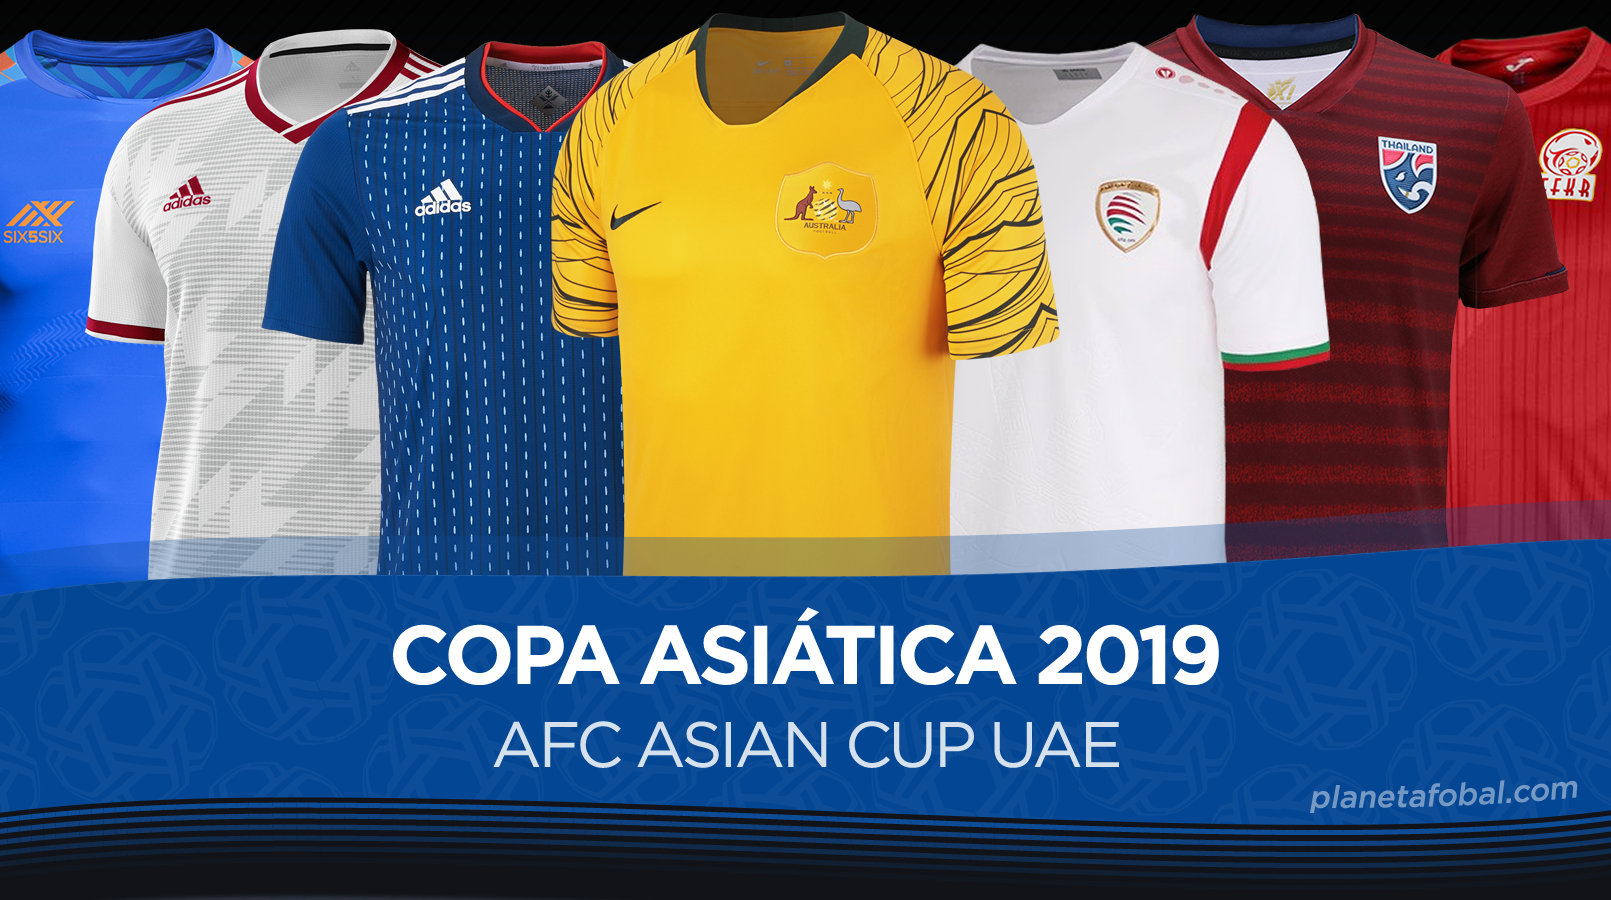 Camisetas de la AFC Asian Cup 2019 | planetafobal.com